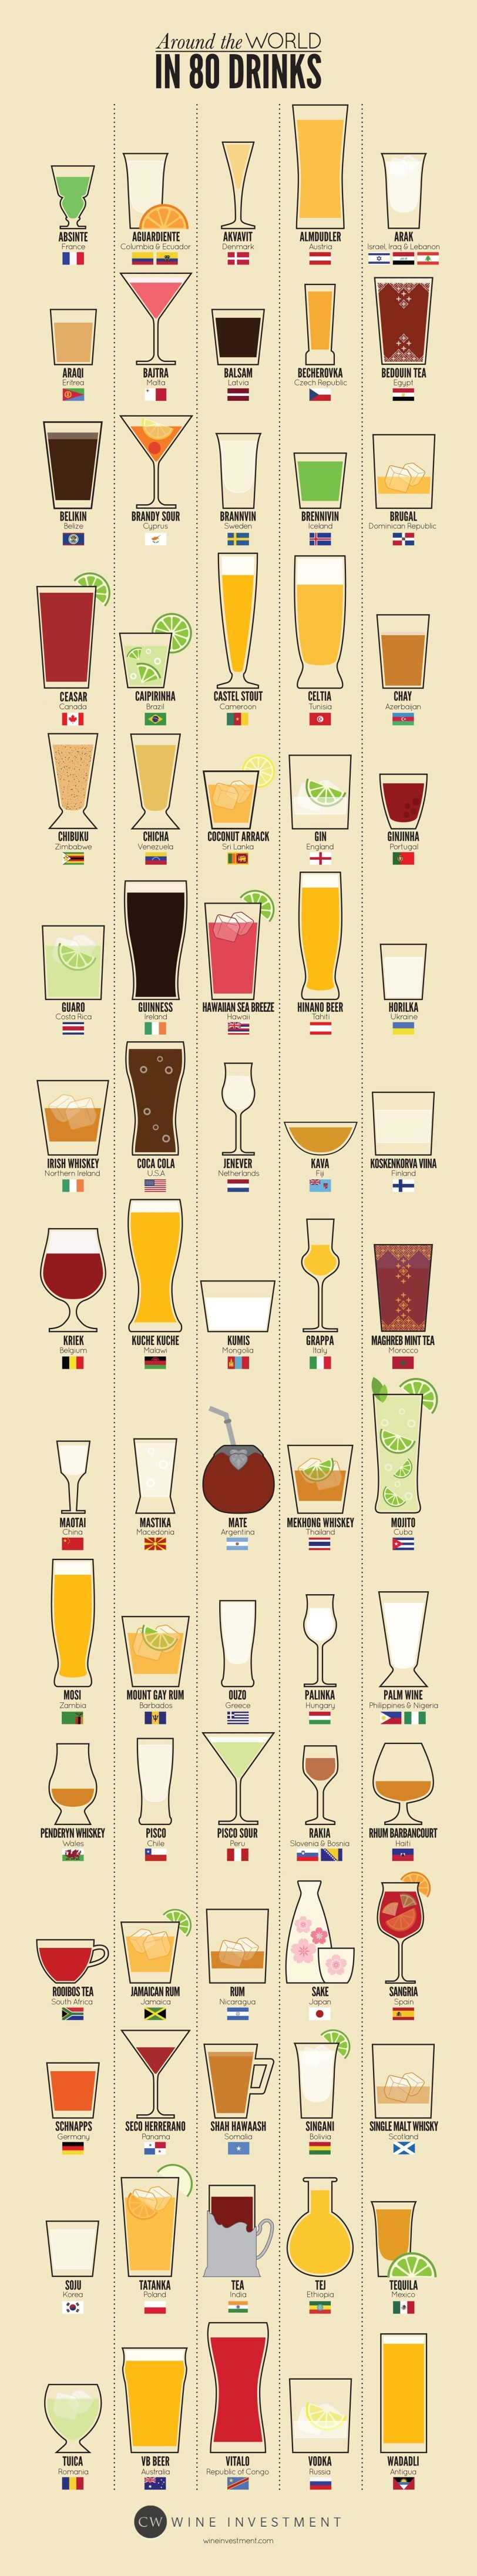 Around the World in 80 Drinks by WineInvestment.com